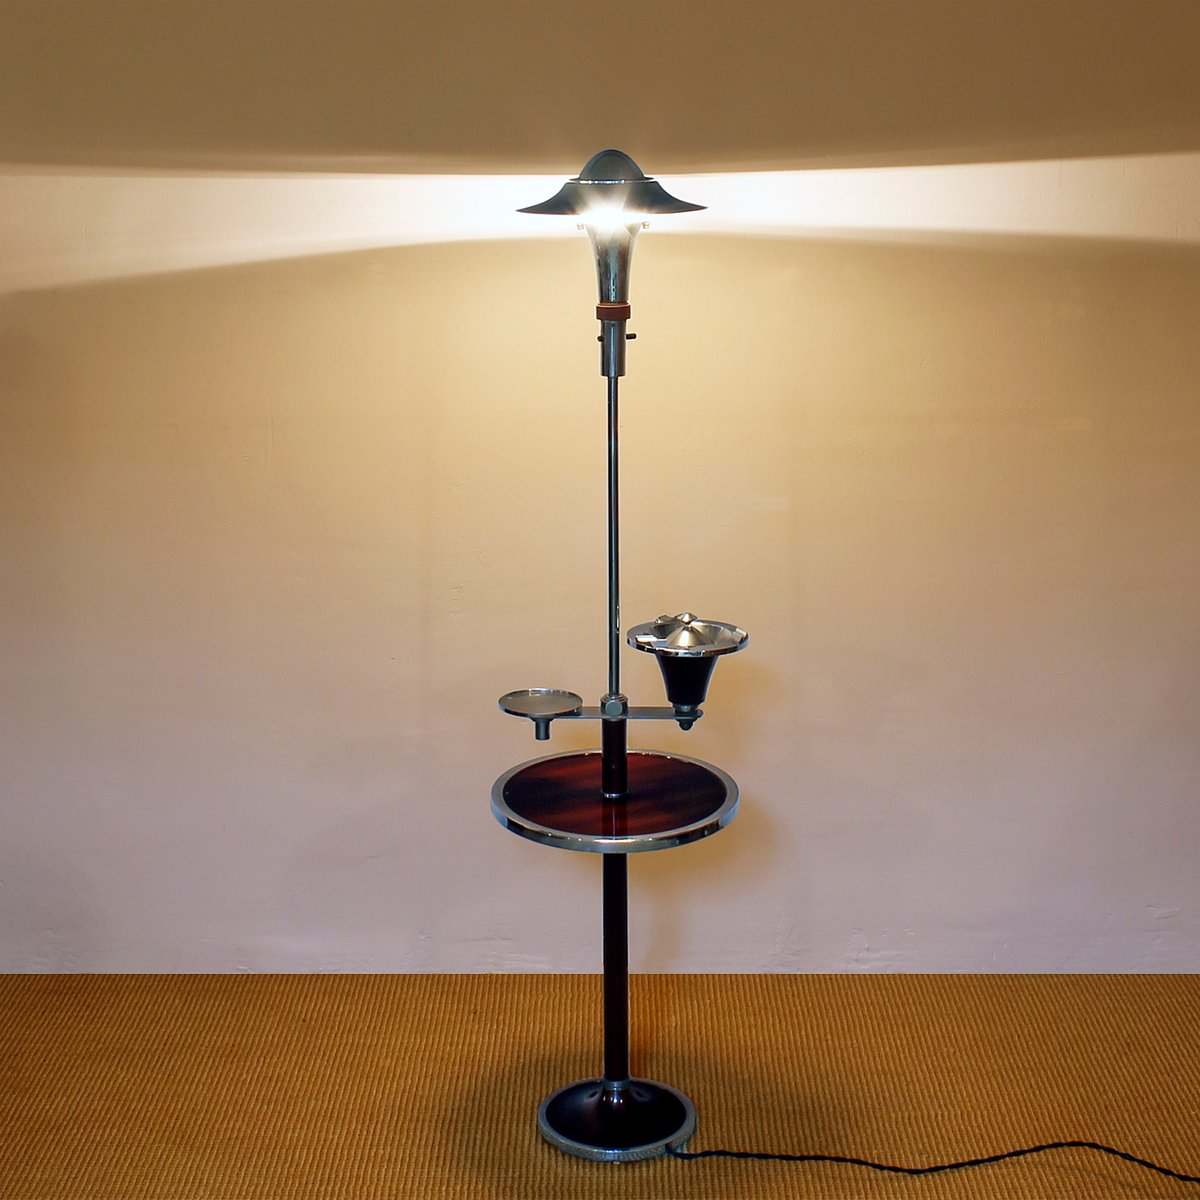 French art deco smoker39s floor lamp 1930s for sale at pamono for Floor standing art deco lamp